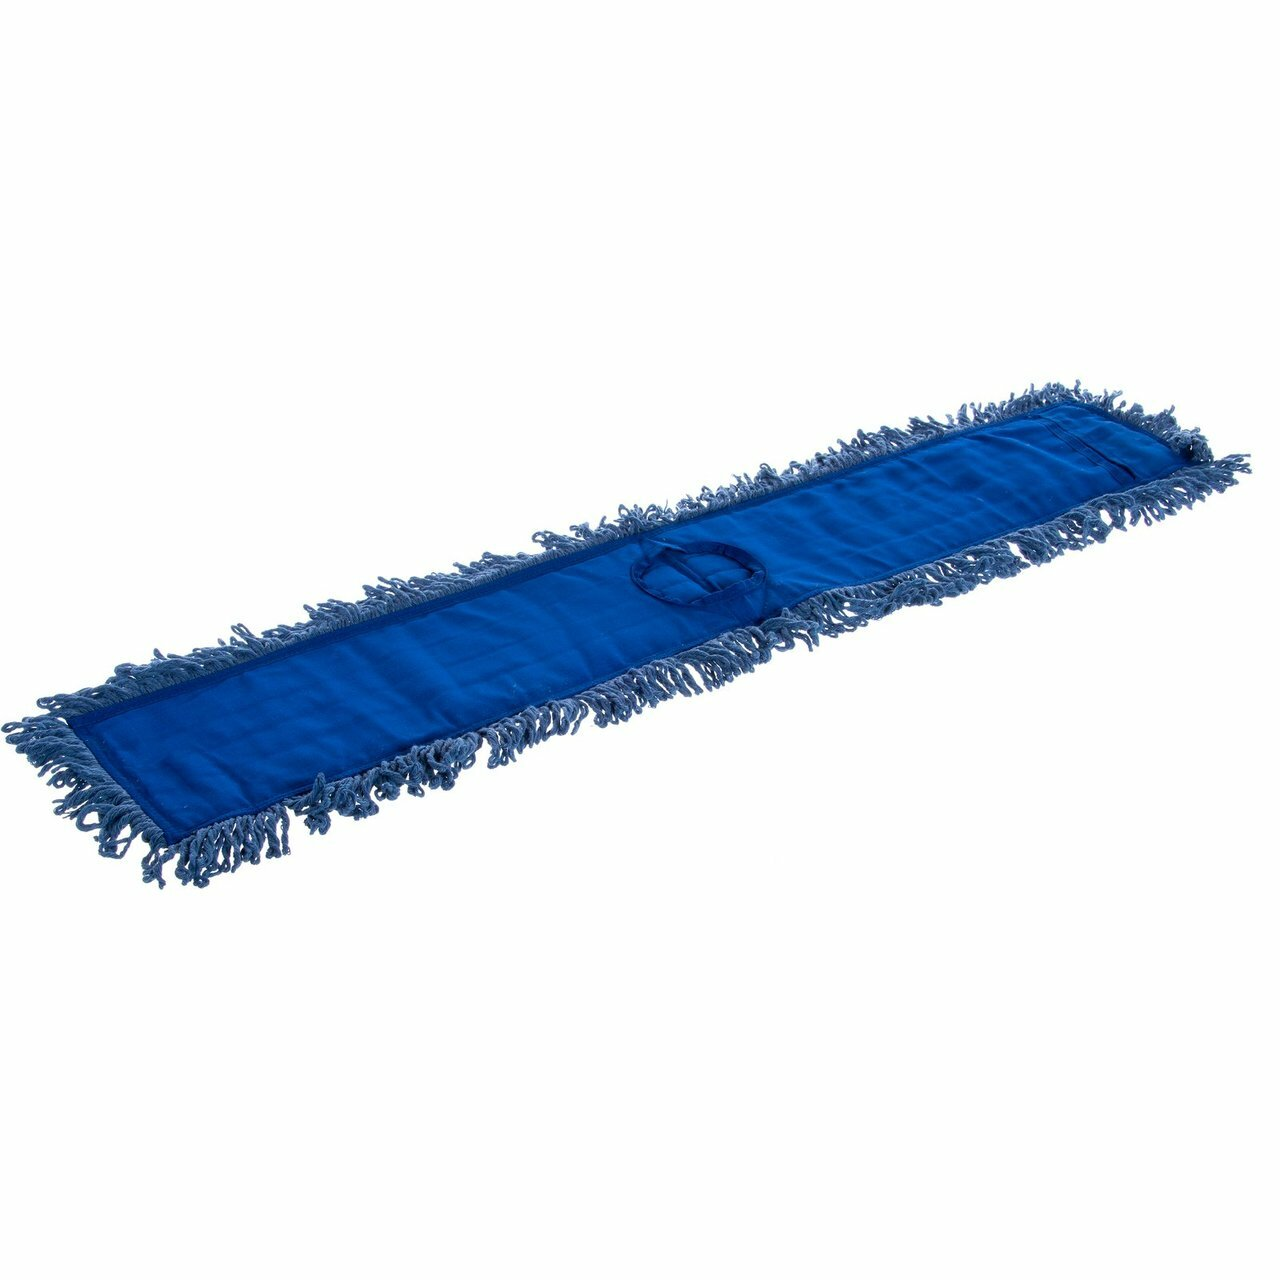 Flo Pac Launderable Dust Mops 36 X 5 Blue Anacon Industrial Suppliers